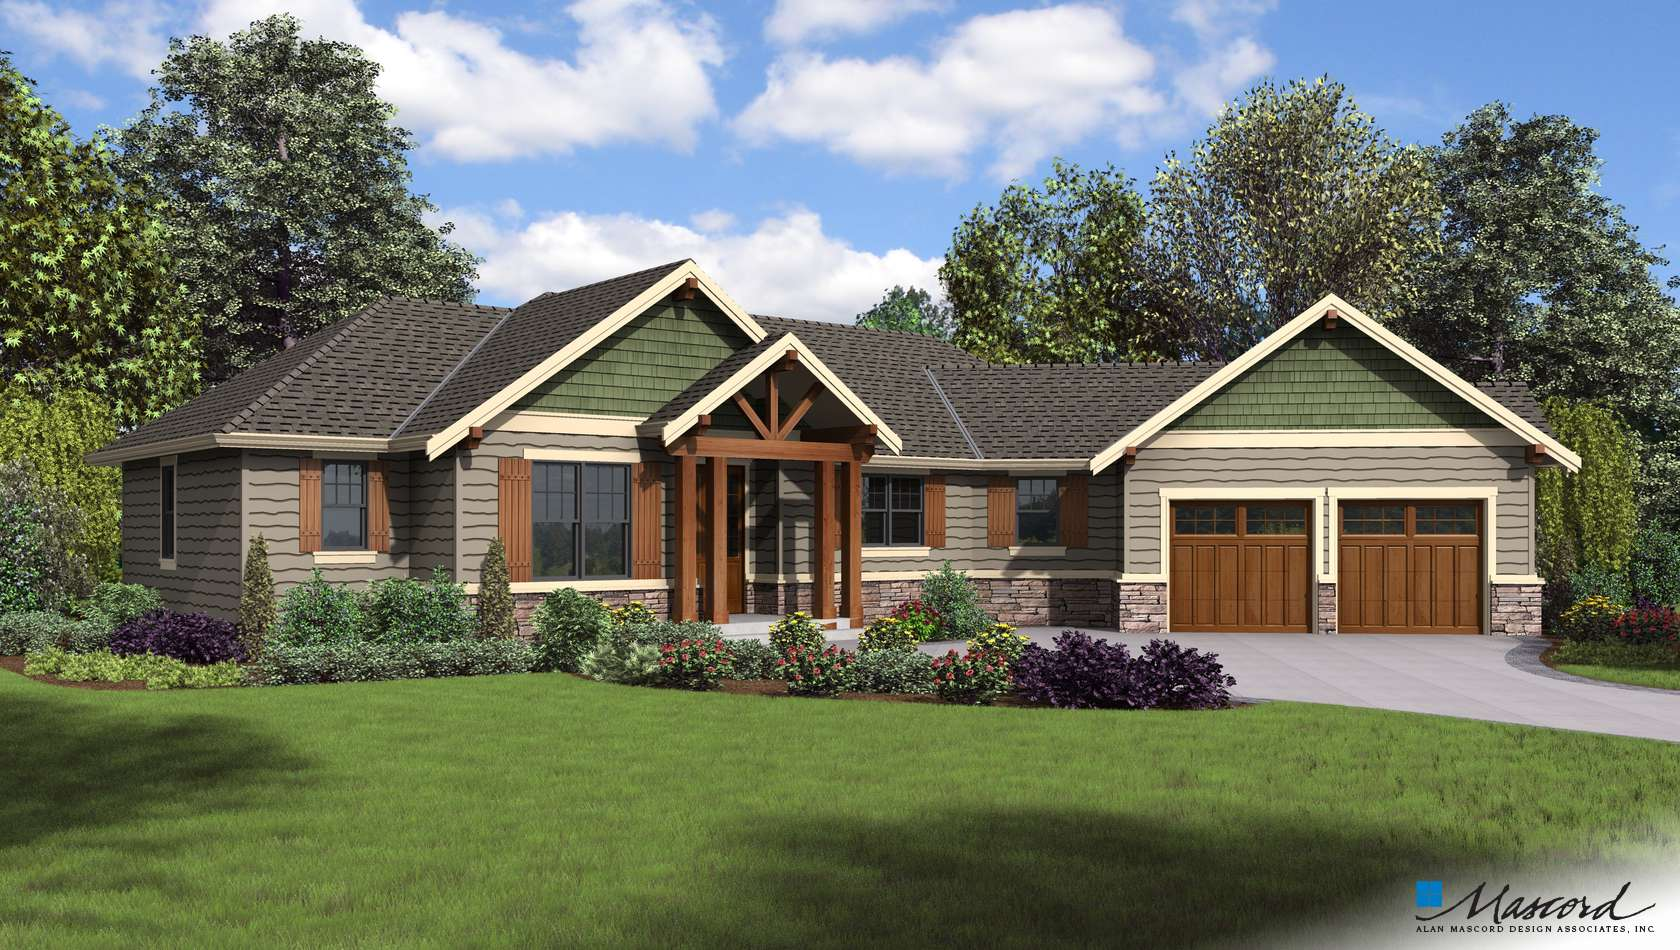 Main image for house plan 1177: The Artemis